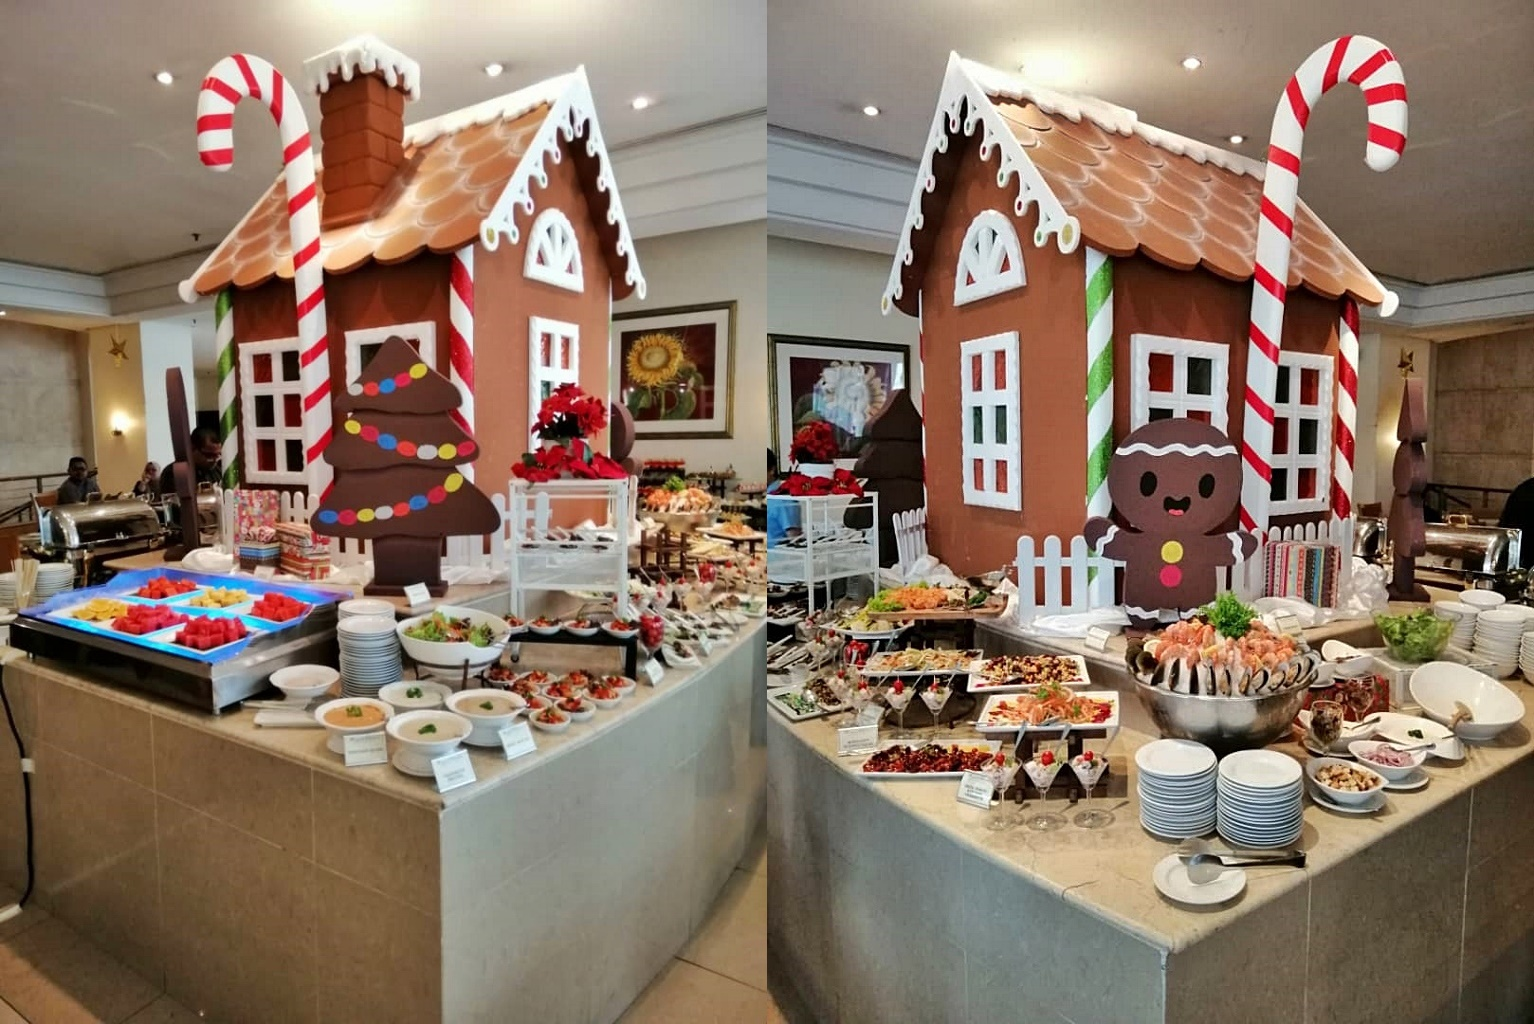 Cuisine Royale How To Heal The Christmas Buffet Royale Chulan Bukit Bintang Weekend